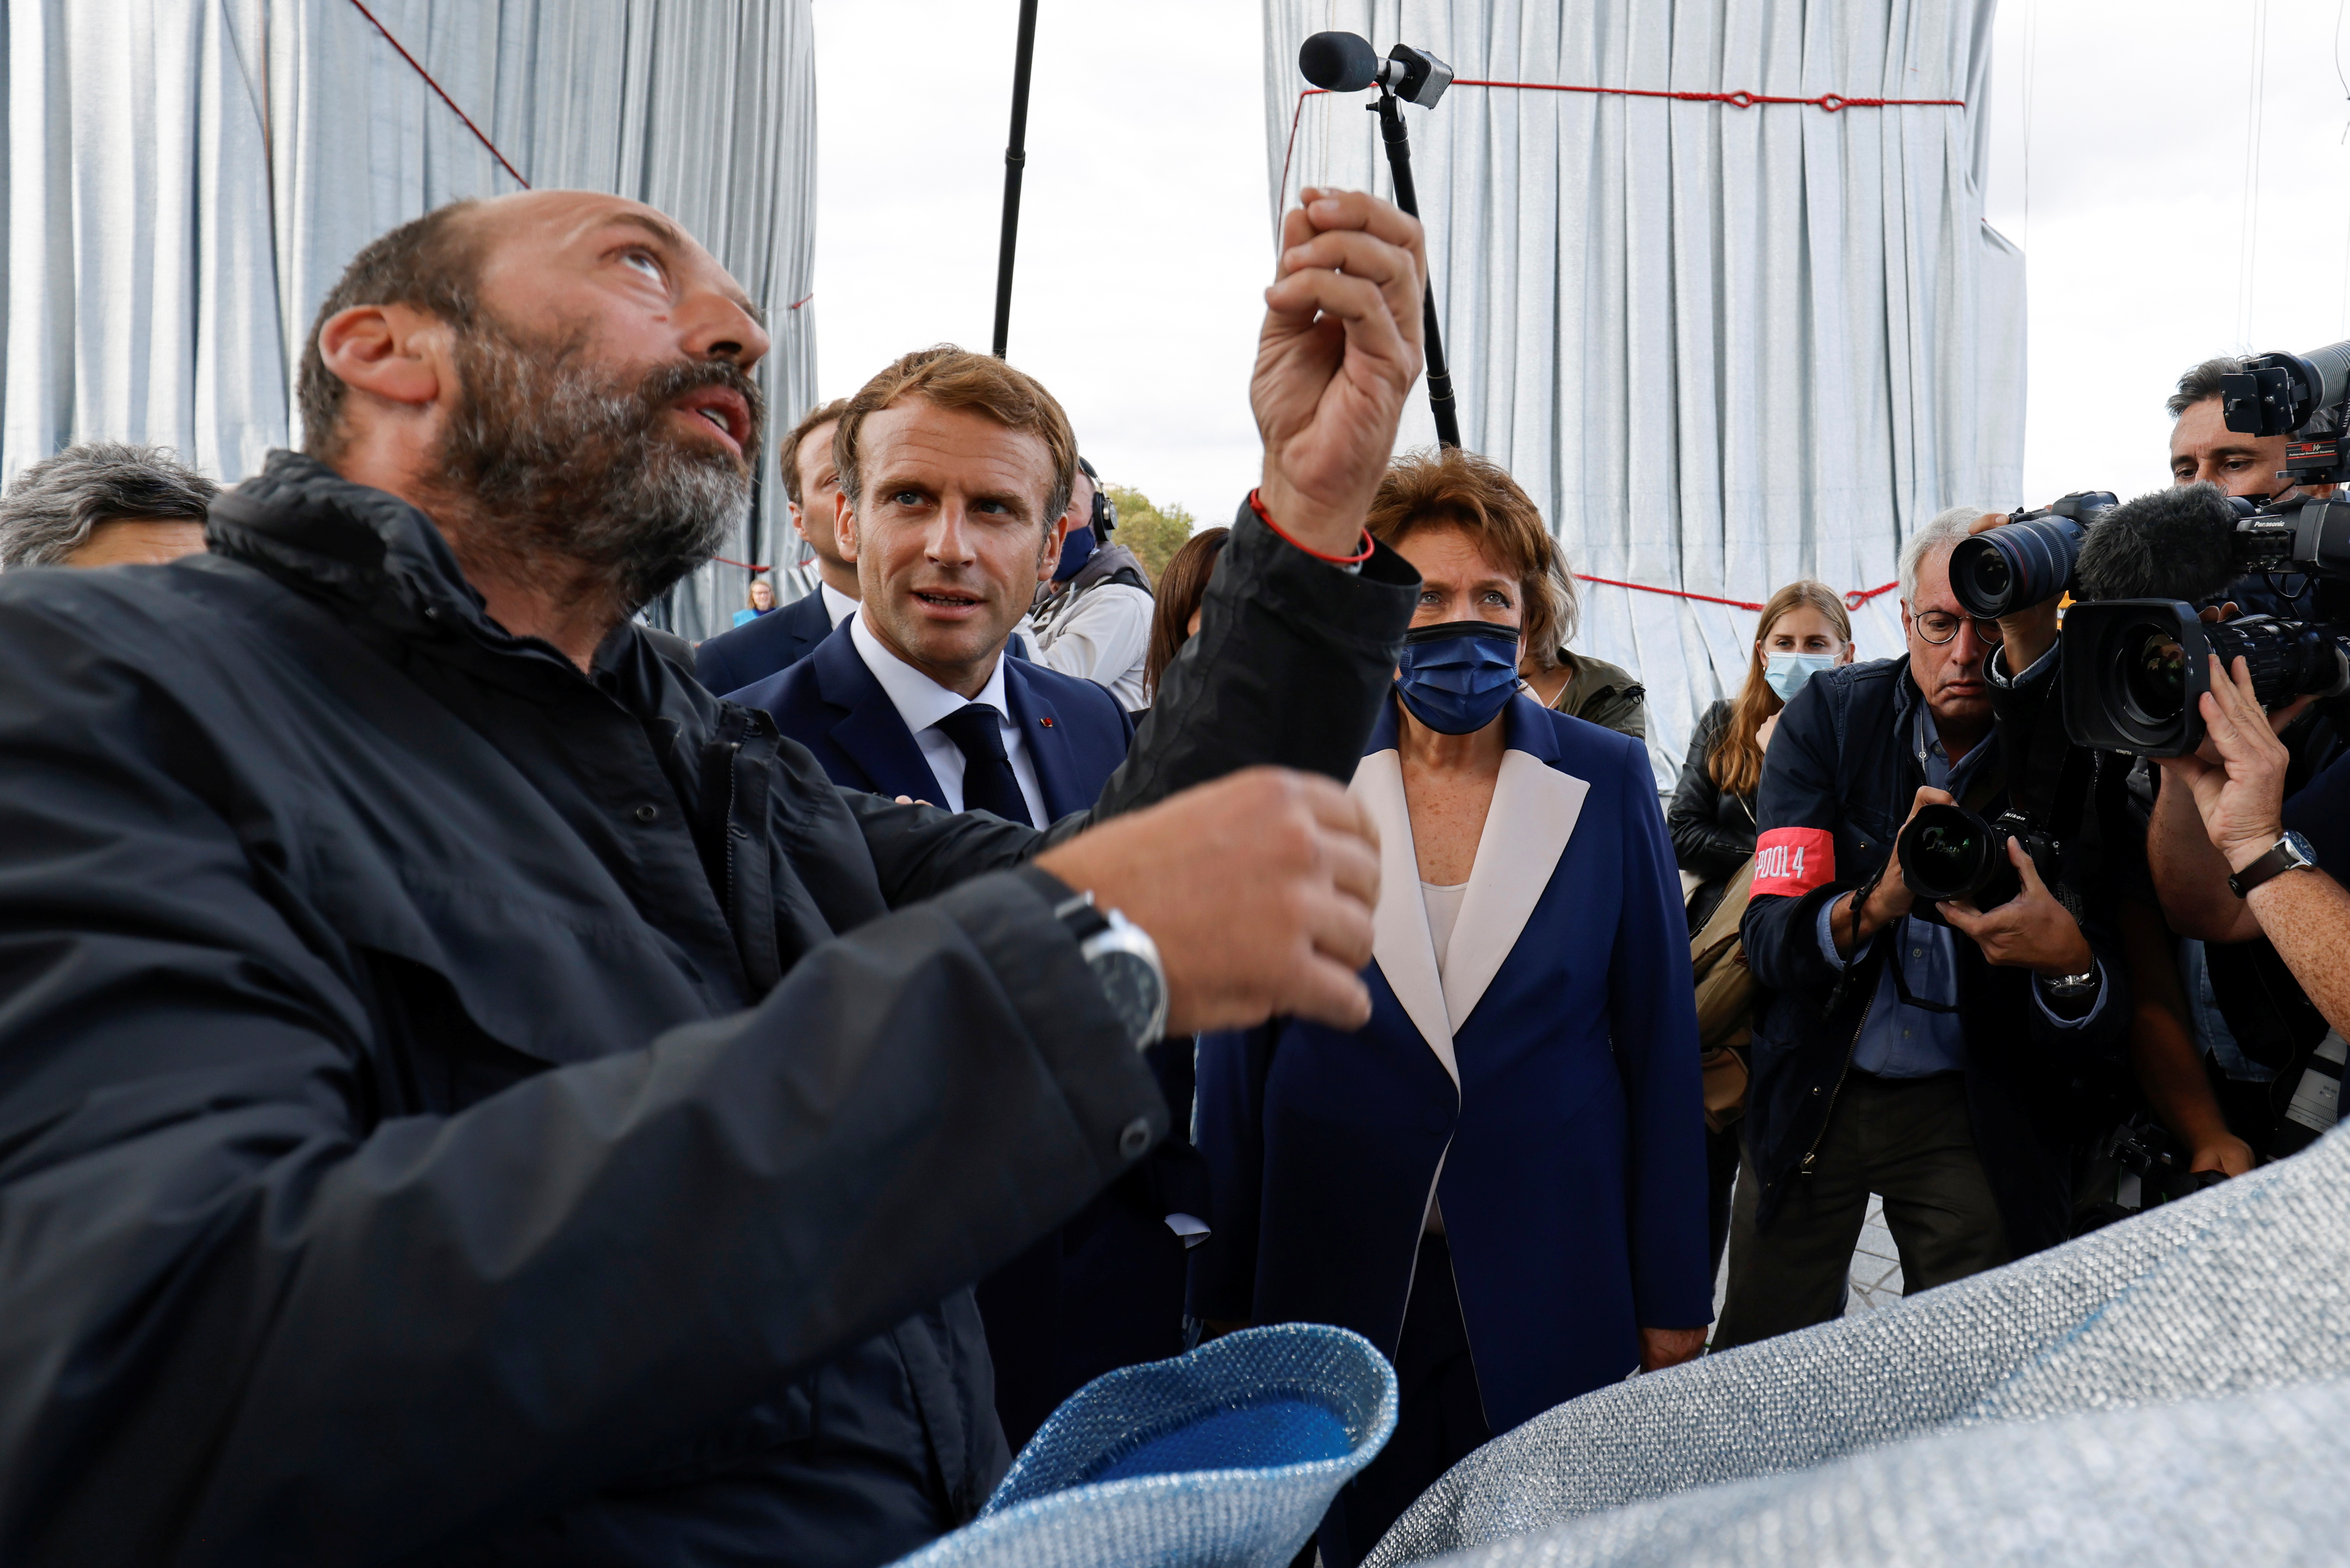 The nephew of late Bulgarian born artist Christo Vladimir Javacheff speaks to French President Emmanuel Macron and French Culture Minister Roselyne Bachelot during the inauguration of the wrapped Arc de Triomphe, designed by the late artist Christo, in Paris, France, September 16, 2021. Ludovic Marin/Pool via REUTERS